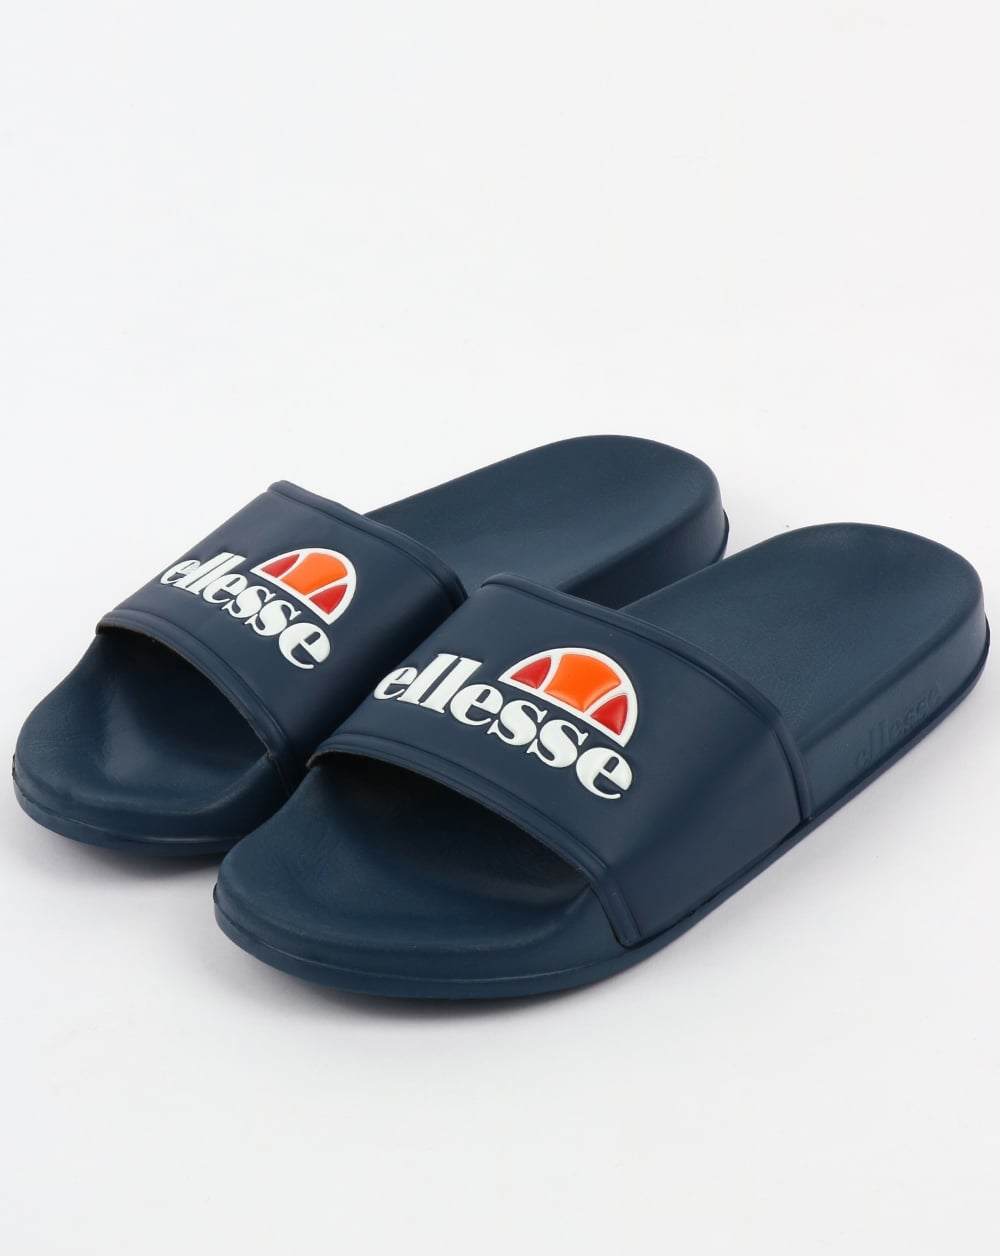 f0897ccab7dc Above  The Ellesse Fillipo slides in navy now available at 80s Casual  Classics.